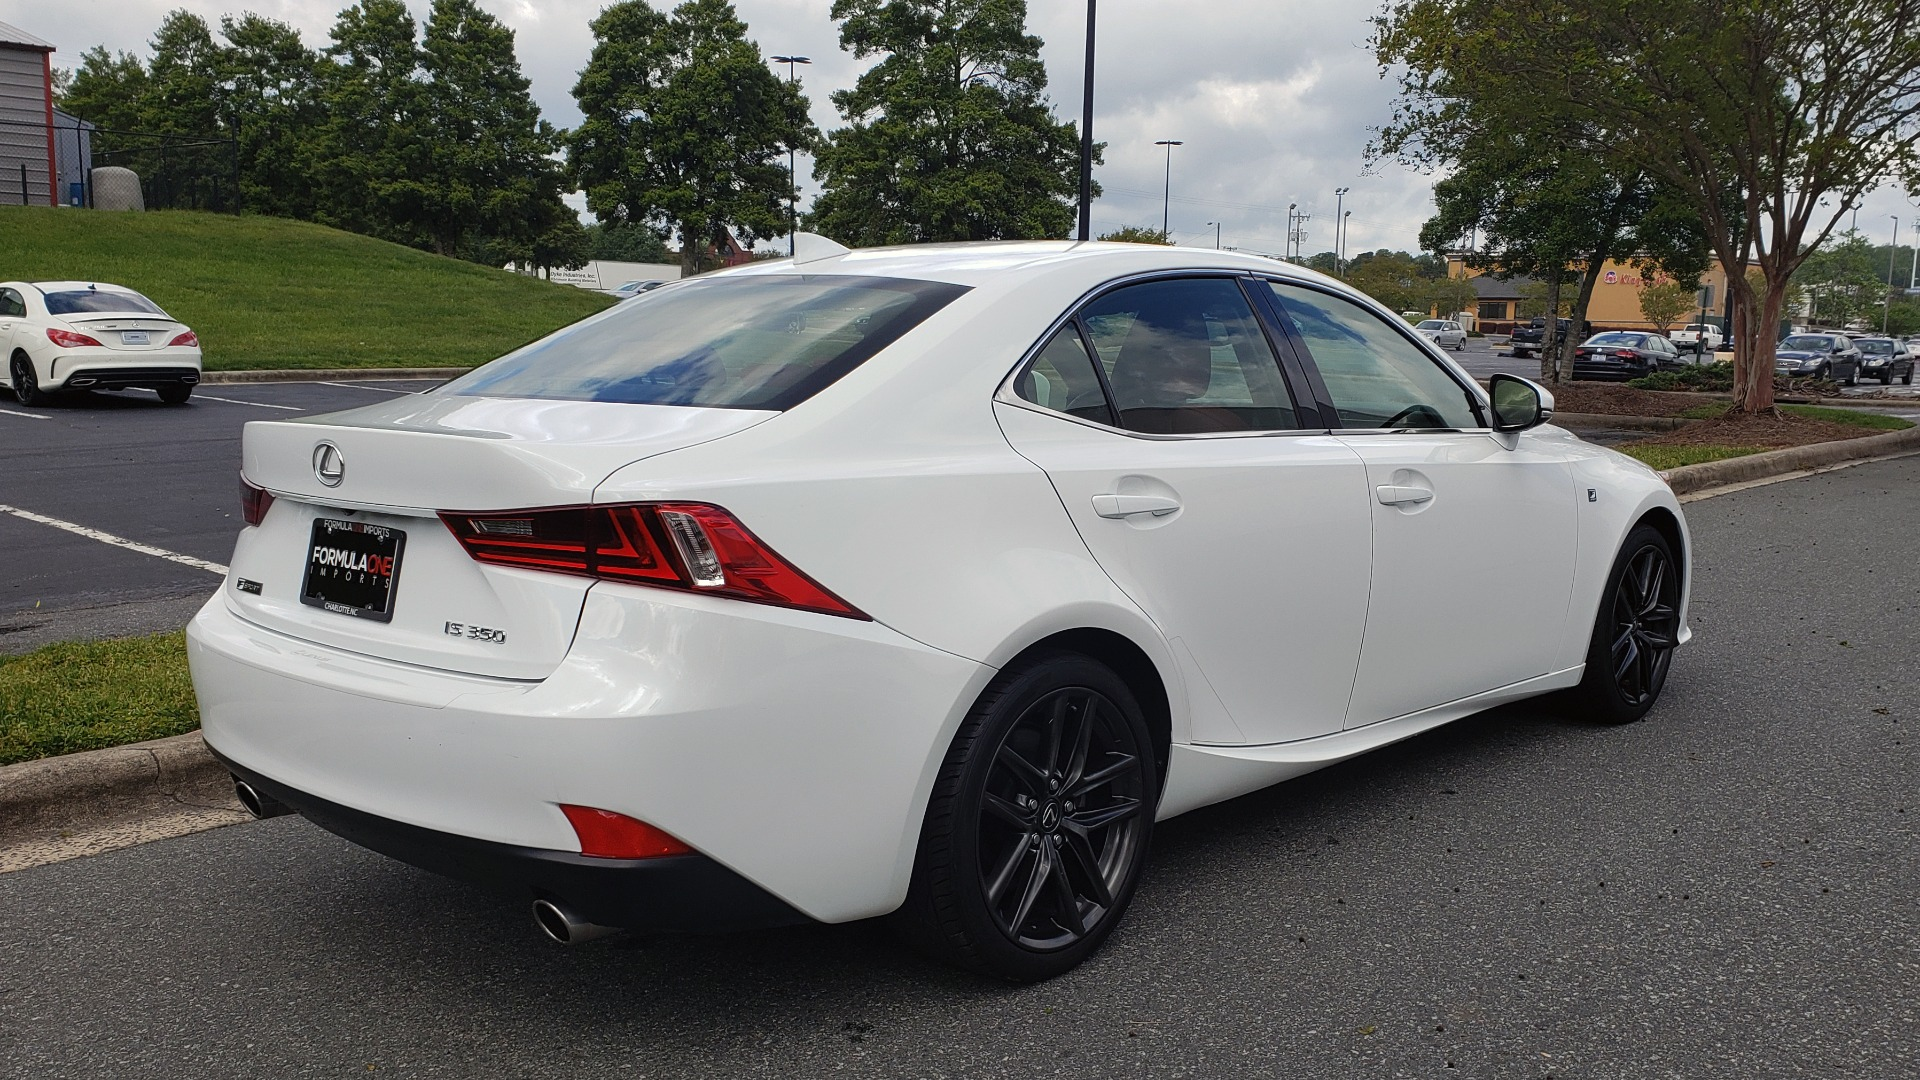 Used 2016 Lexus IS 350 F-SPORT / NAV / BSM / SUNROOF / REARVIEW / VENT SEATS for sale Sold at Formula Imports in Charlotte NC 28227 6